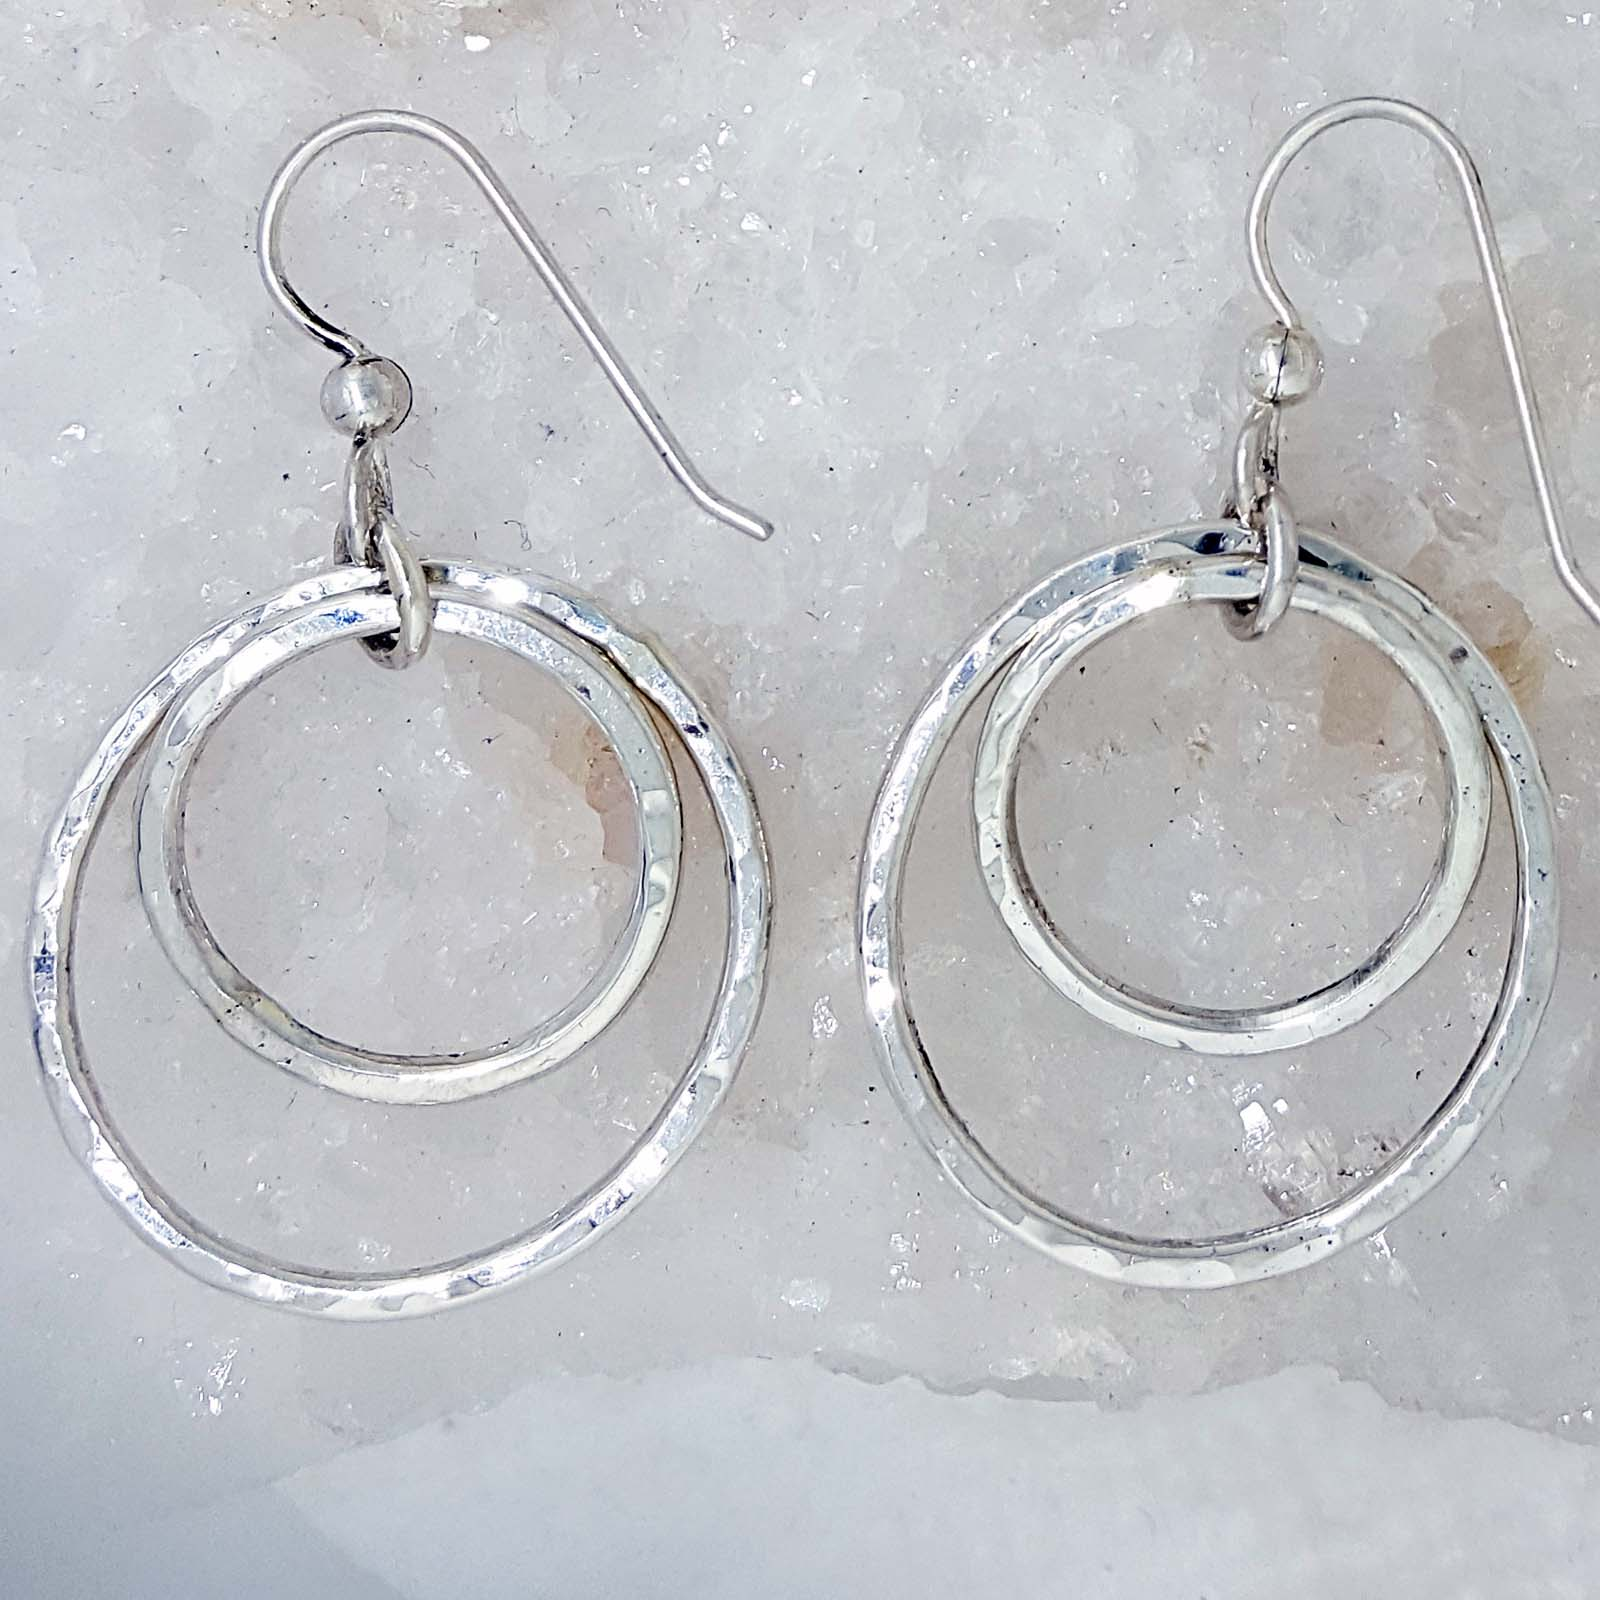 8fd12e5cb Hand Crafted Sterling Silver Dangle Hoop Earrings with a Hammered Finish